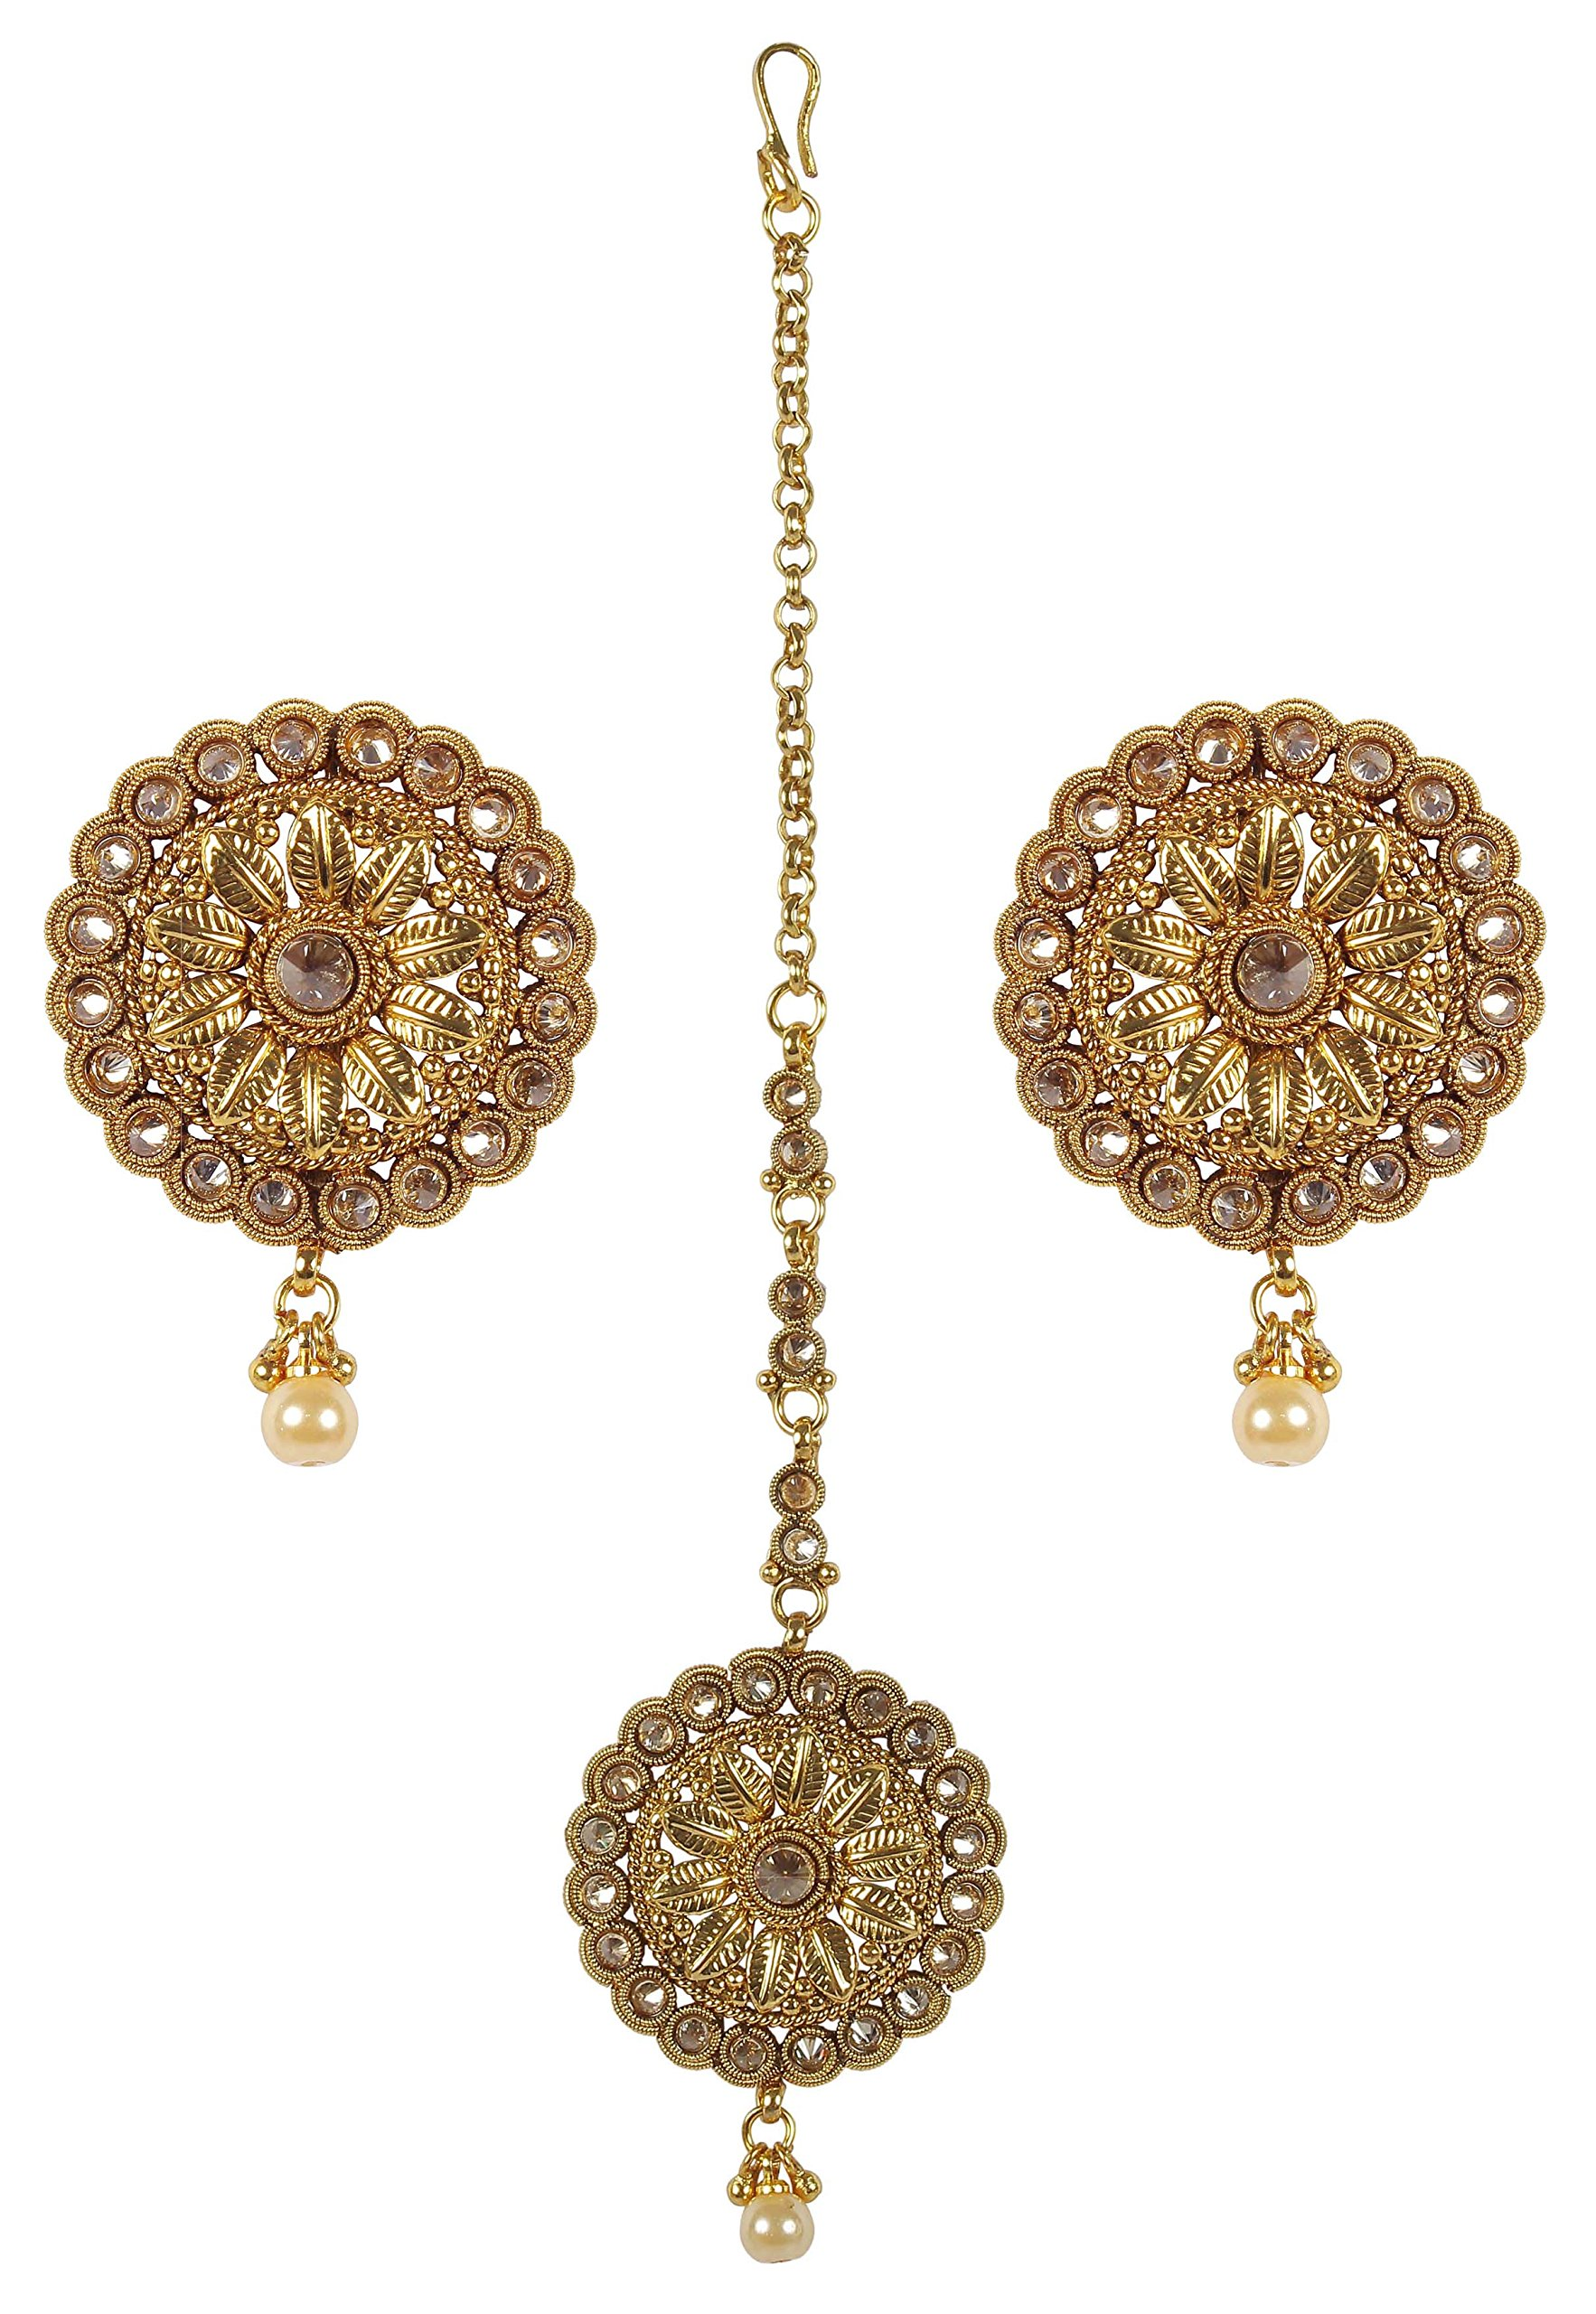 MUCH-MORE Indian Gold Plated Traditional Gorgeous Multi Stone earring with mang tikka Jewelry For Women (2295)